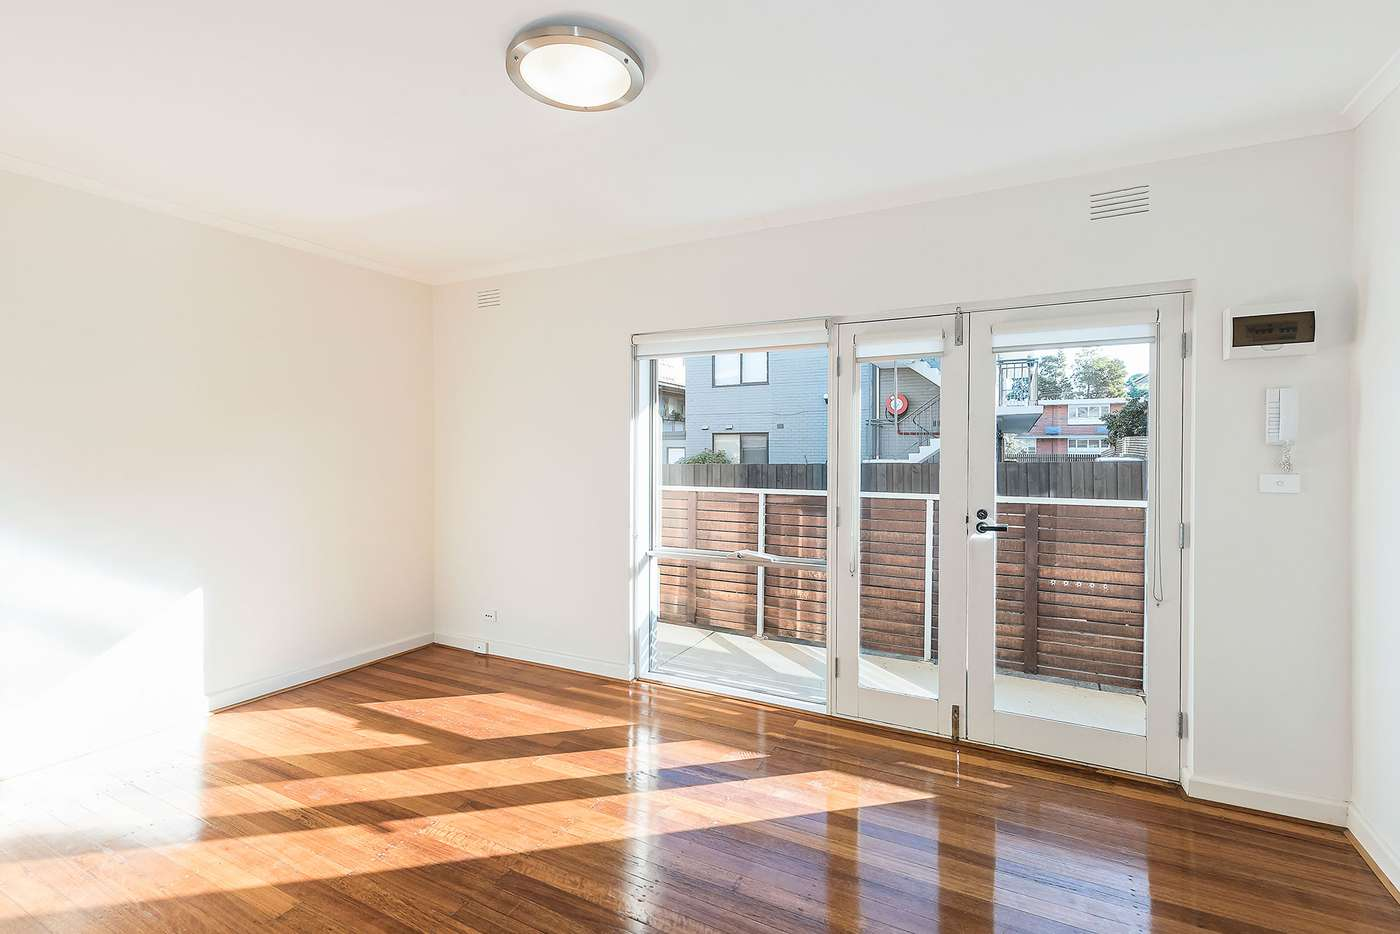 Main view of Homely apartment listing, 3/93 Argyle Street, St Kilda VIC 3182